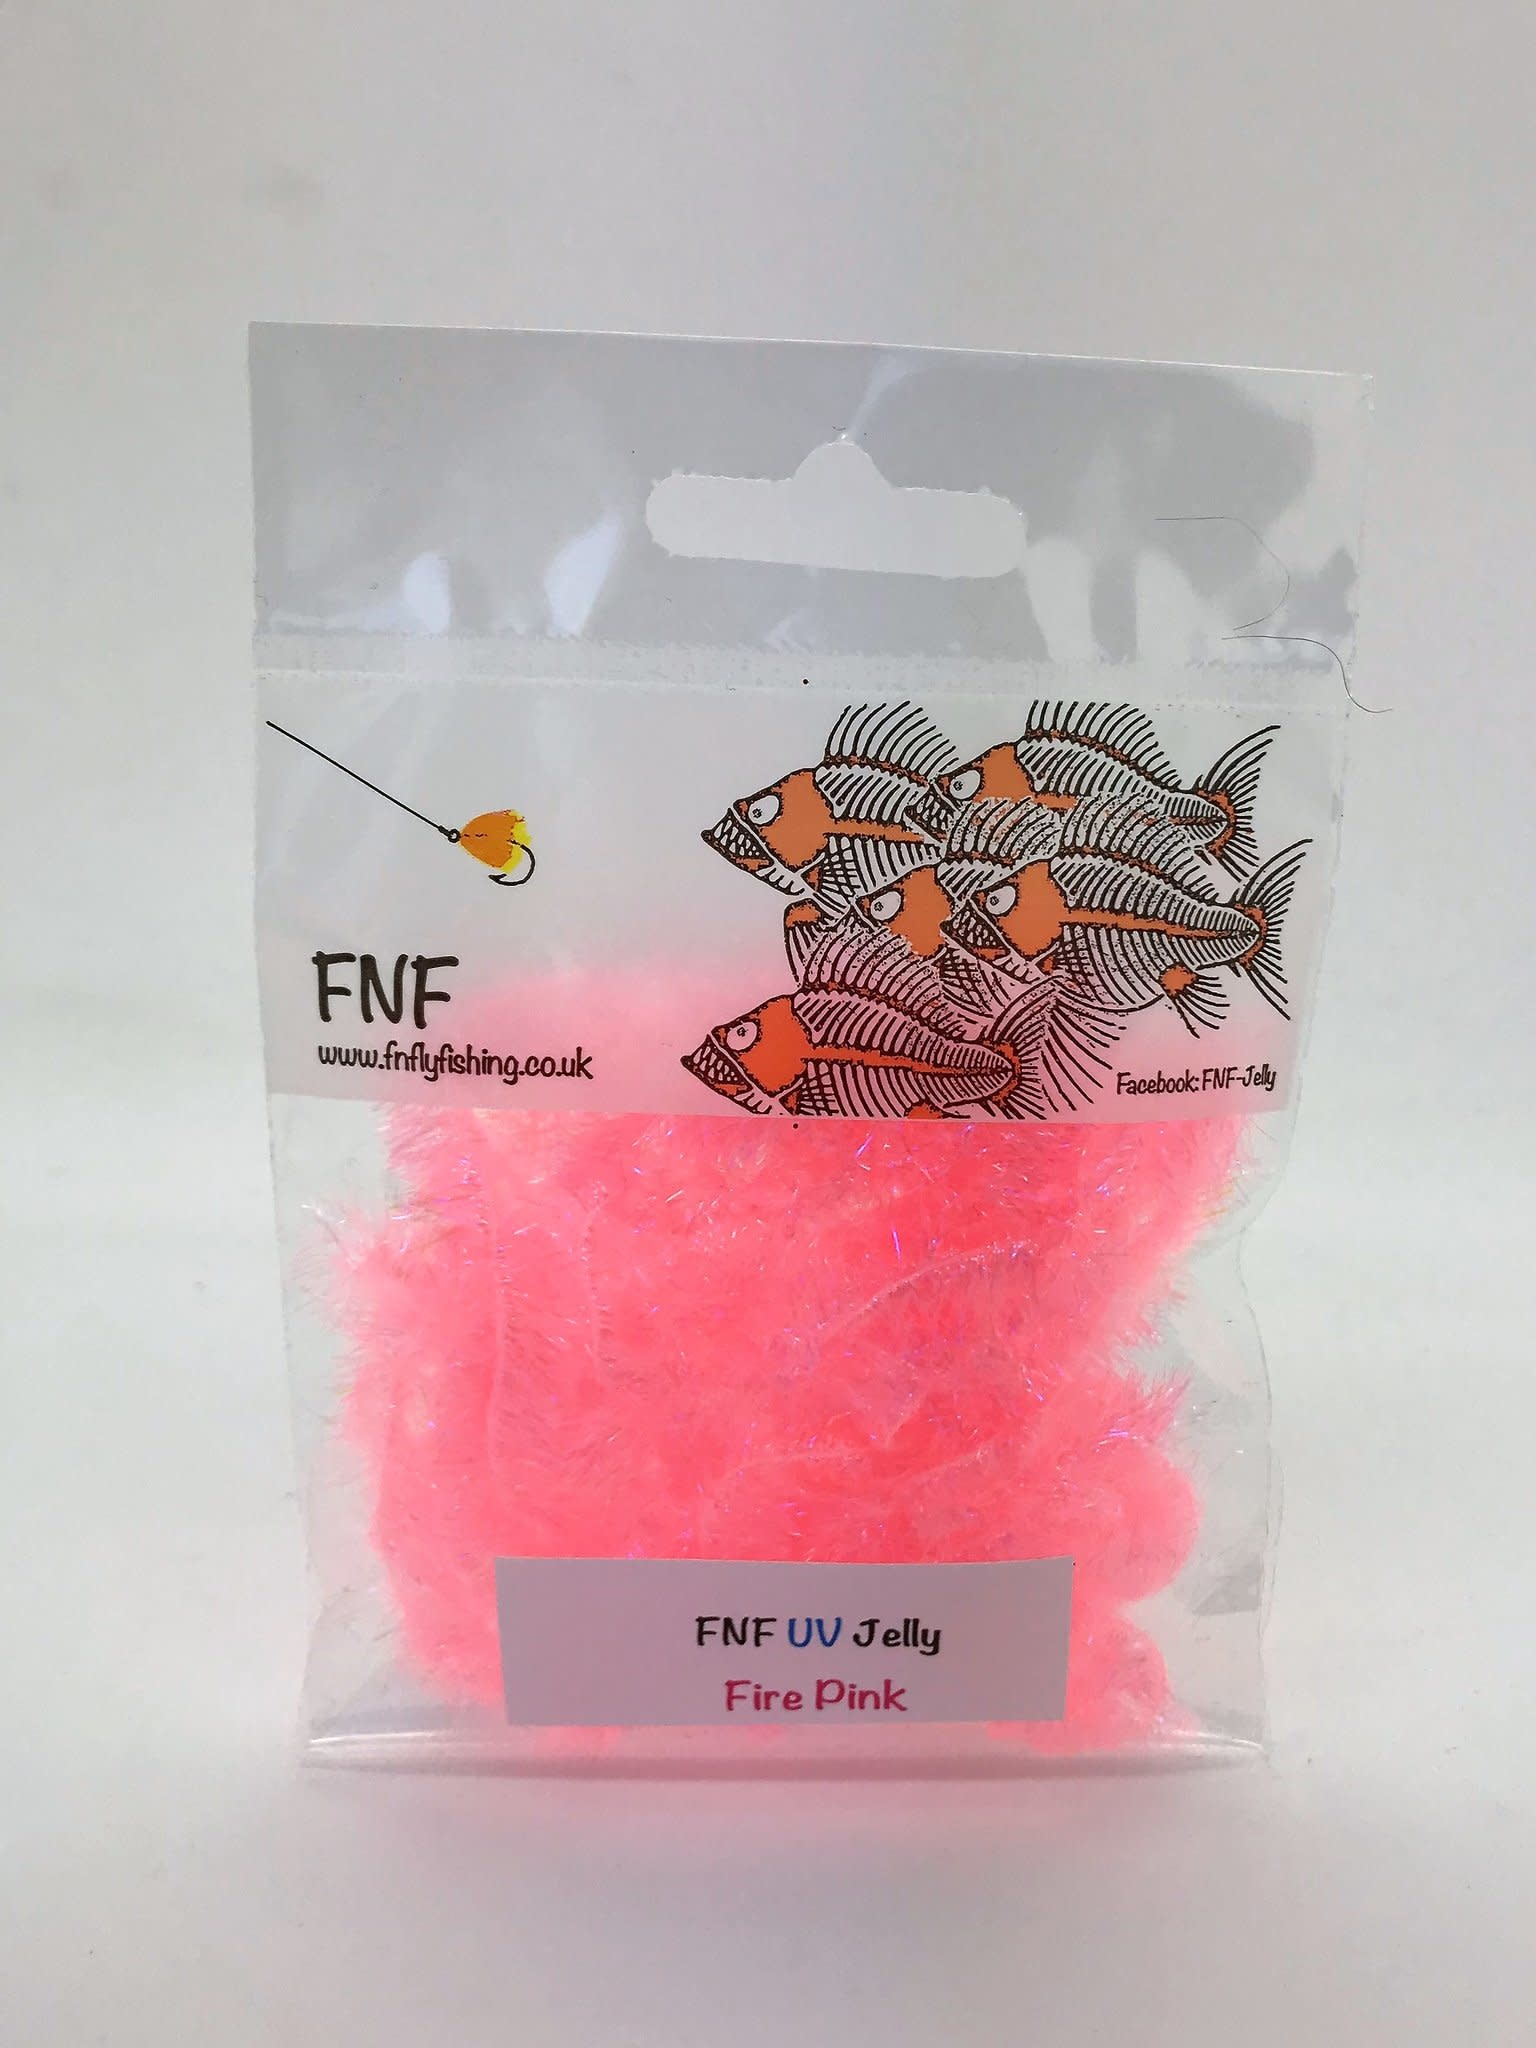 FNF UV Jelly